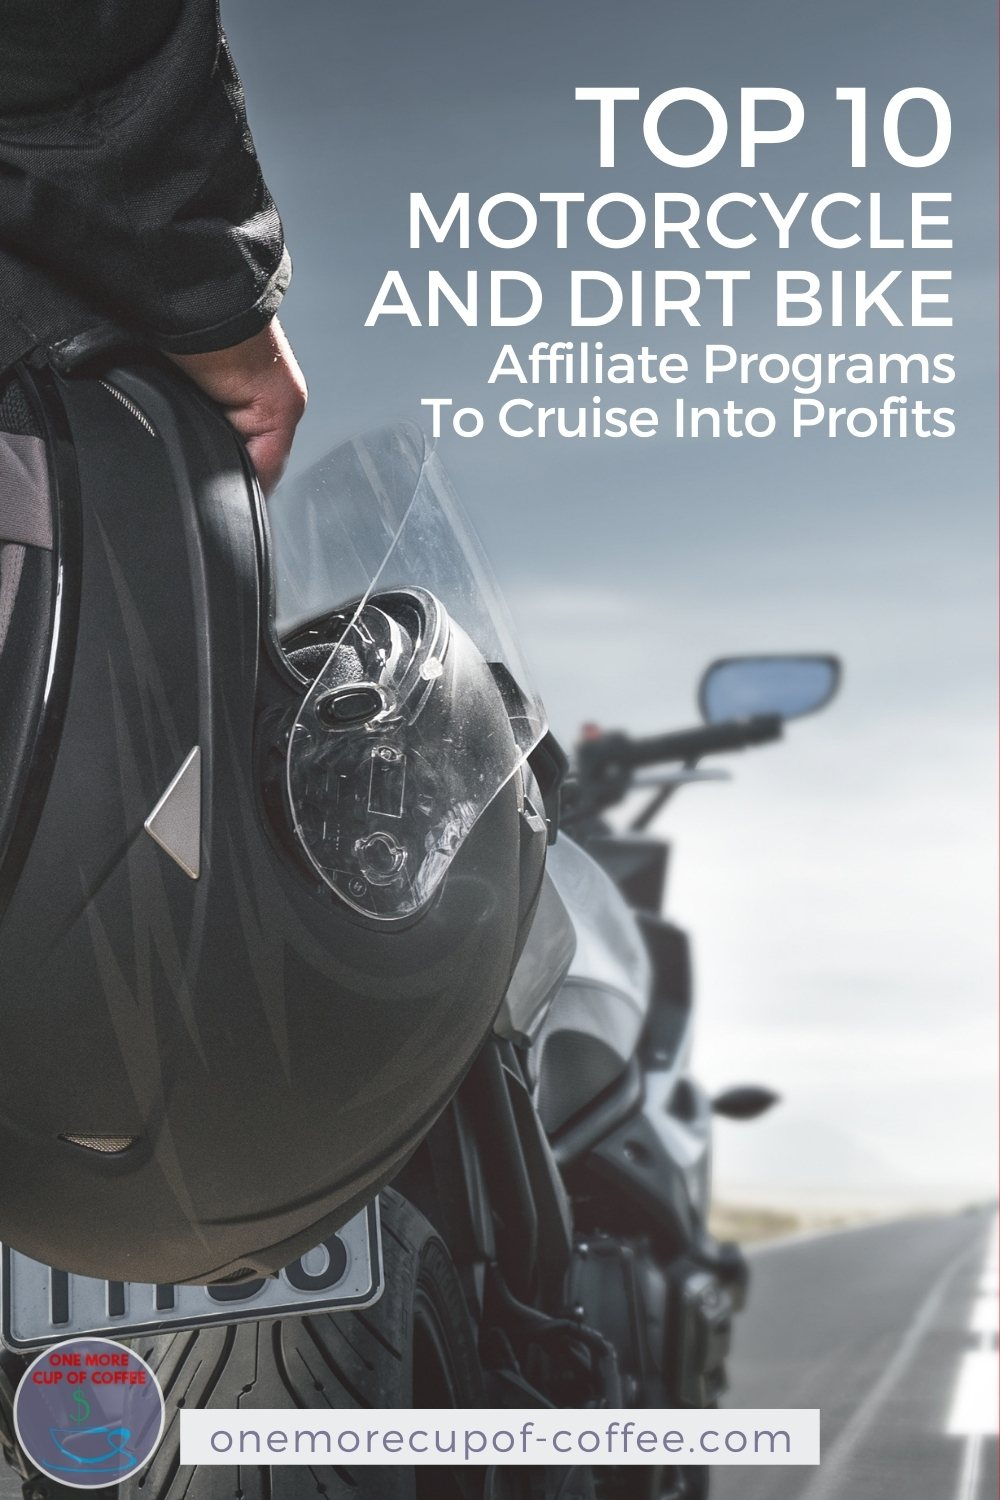 """closeup image of a hand holding a helmet with motorcycle at the back, with text overlay """"Top 10 Motorcycle and Dirt Bike Affiliate Programs To Cruise Into Profits"""""""